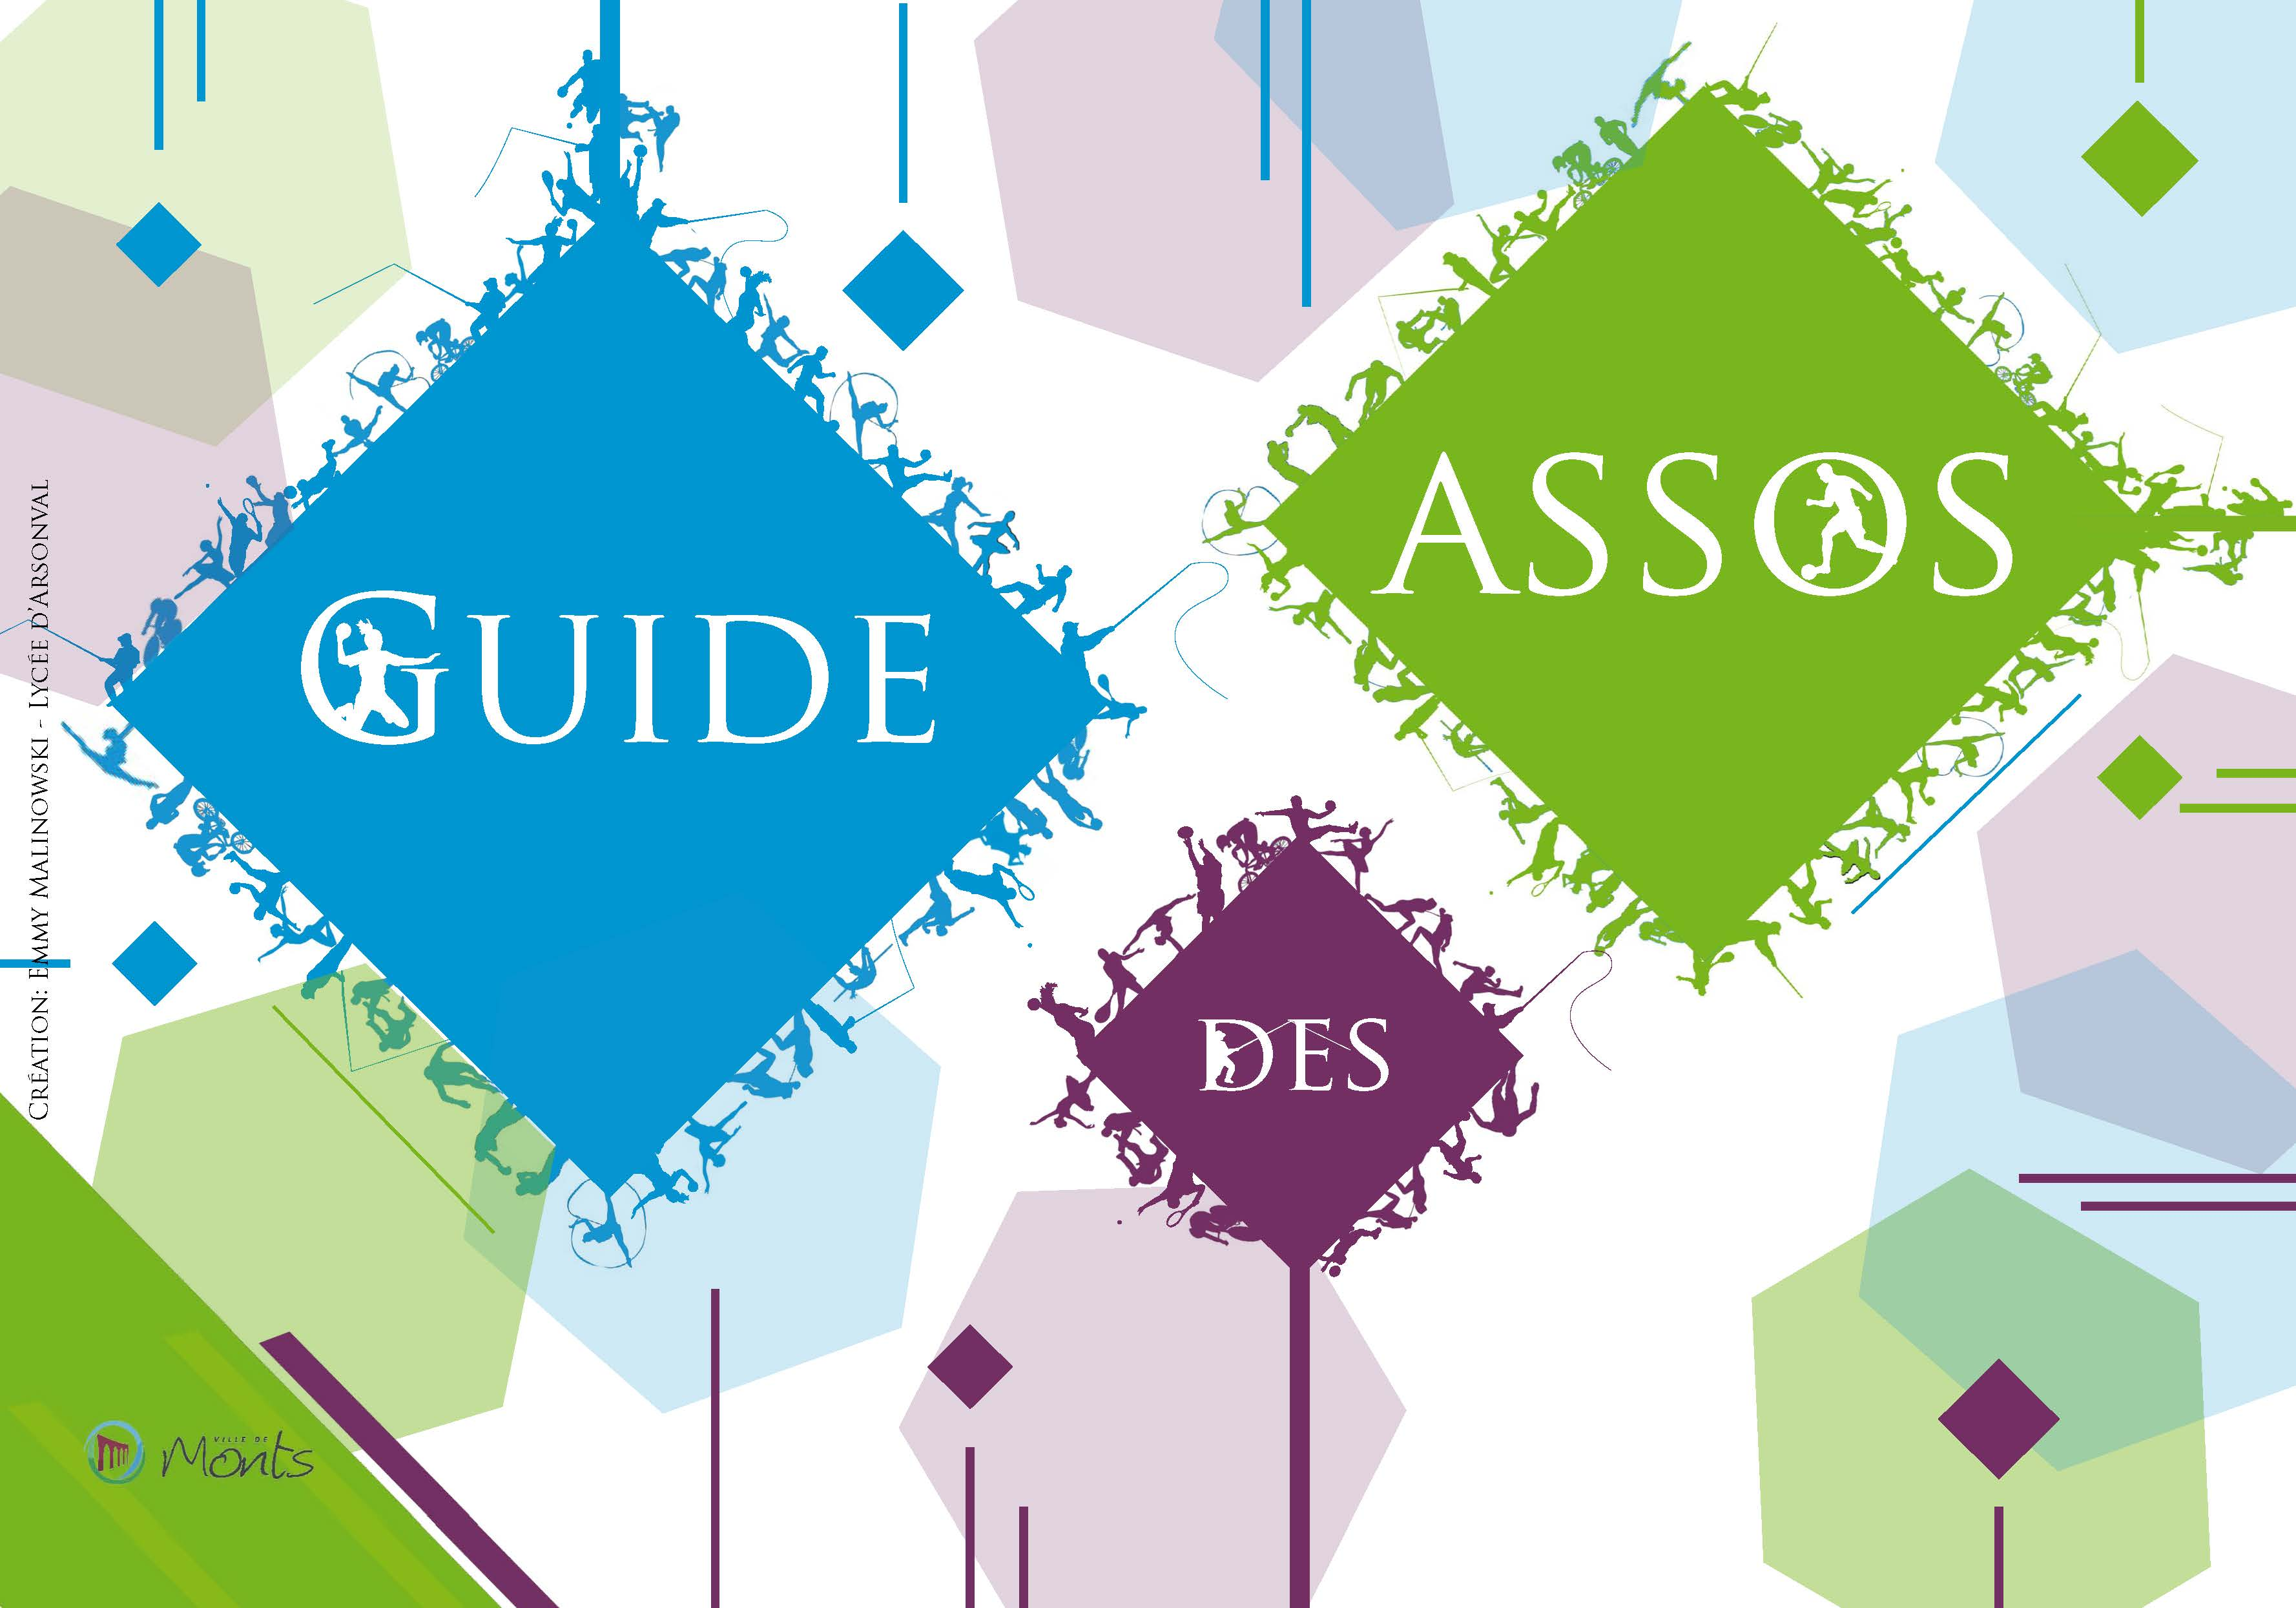 guide des asso_Page_01.jpg